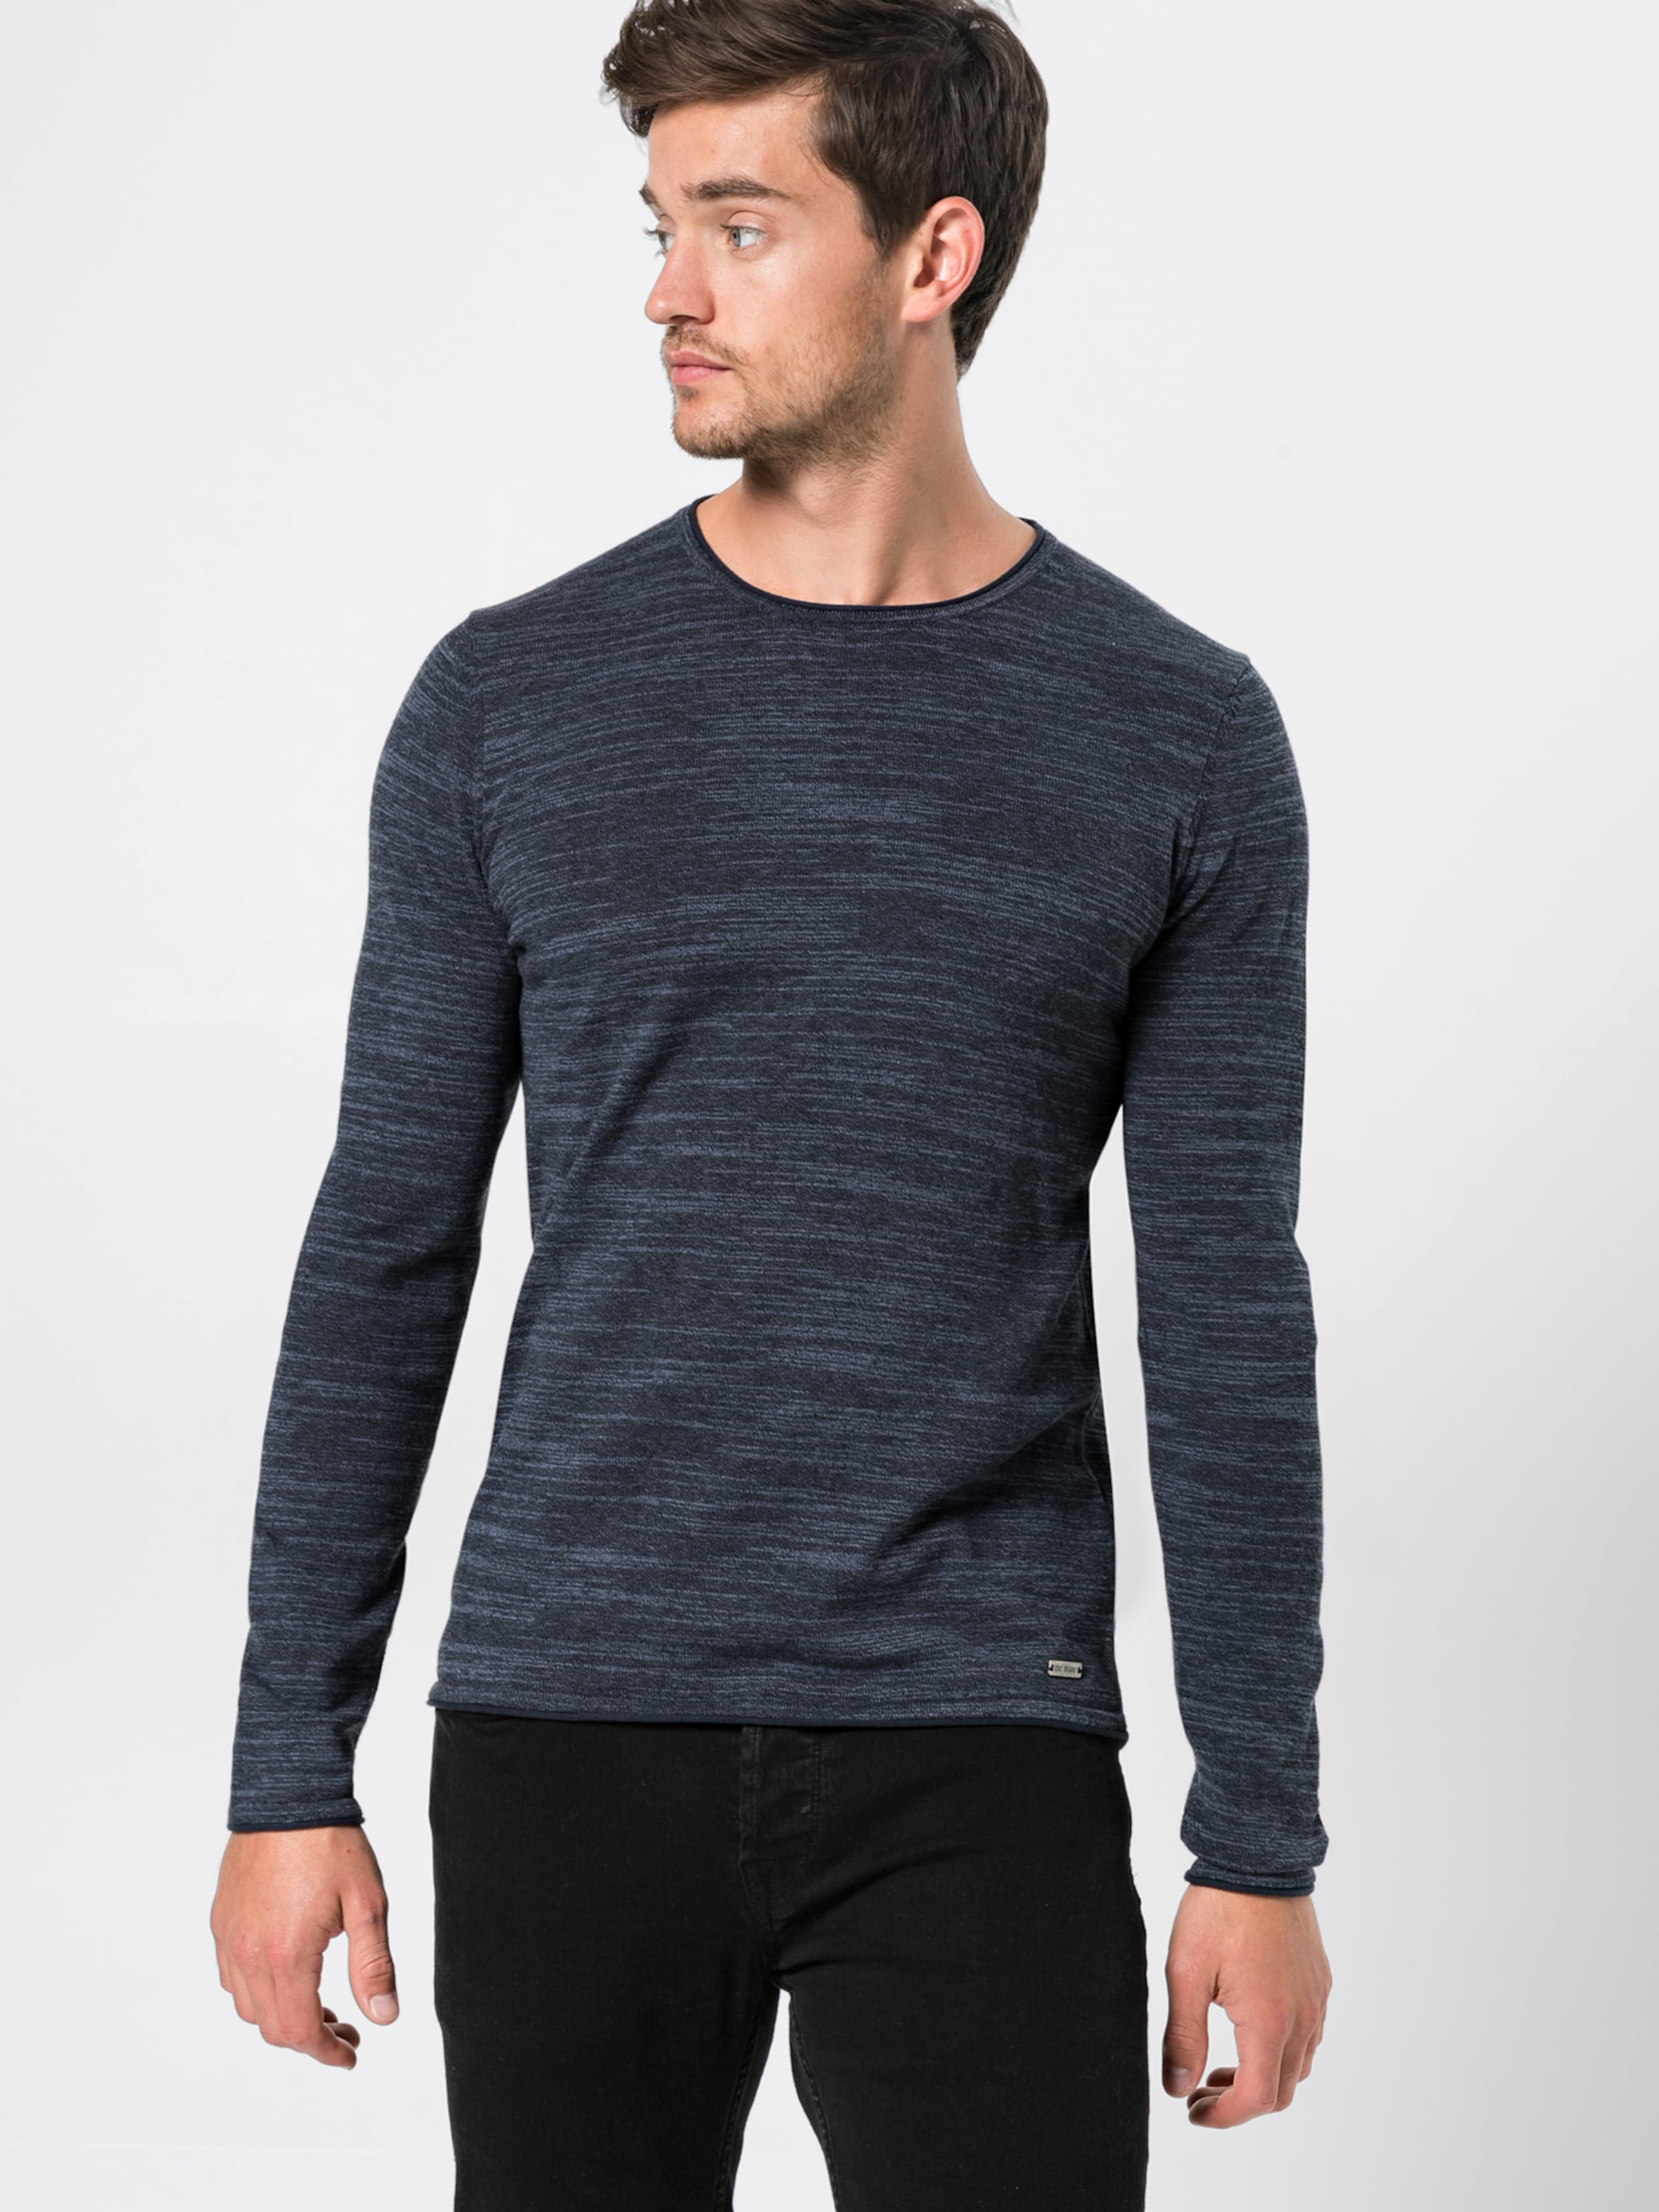 'noos Plated Pullover In Navy Cnk' Esprit Edc By ExoeWQdCBr